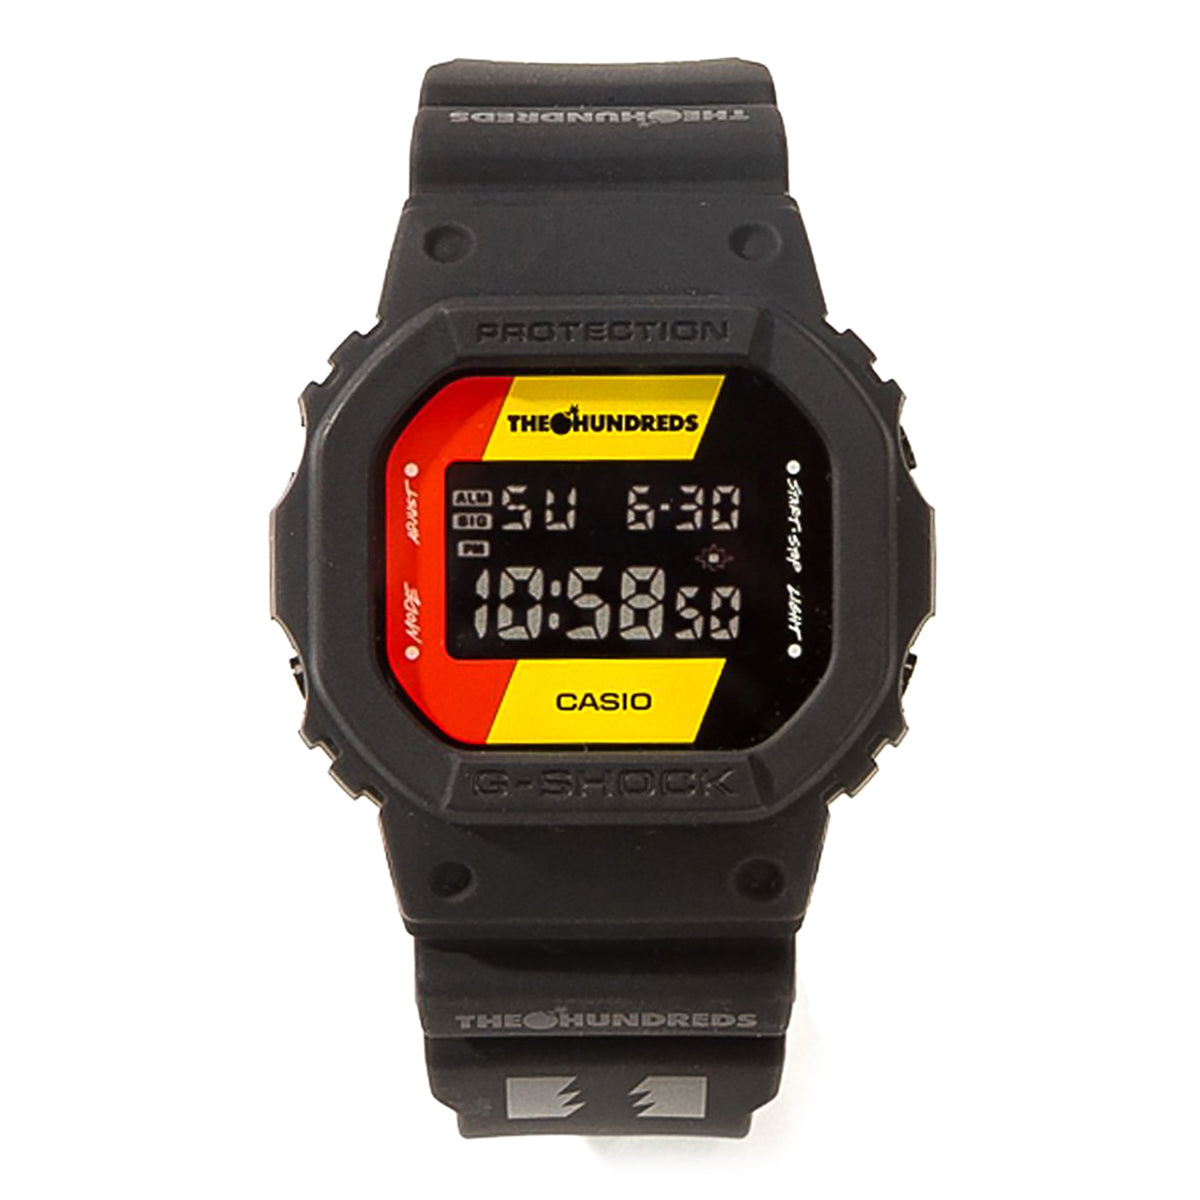 G-Shock: DW5600HDR-1 Hundreds Watch - Black